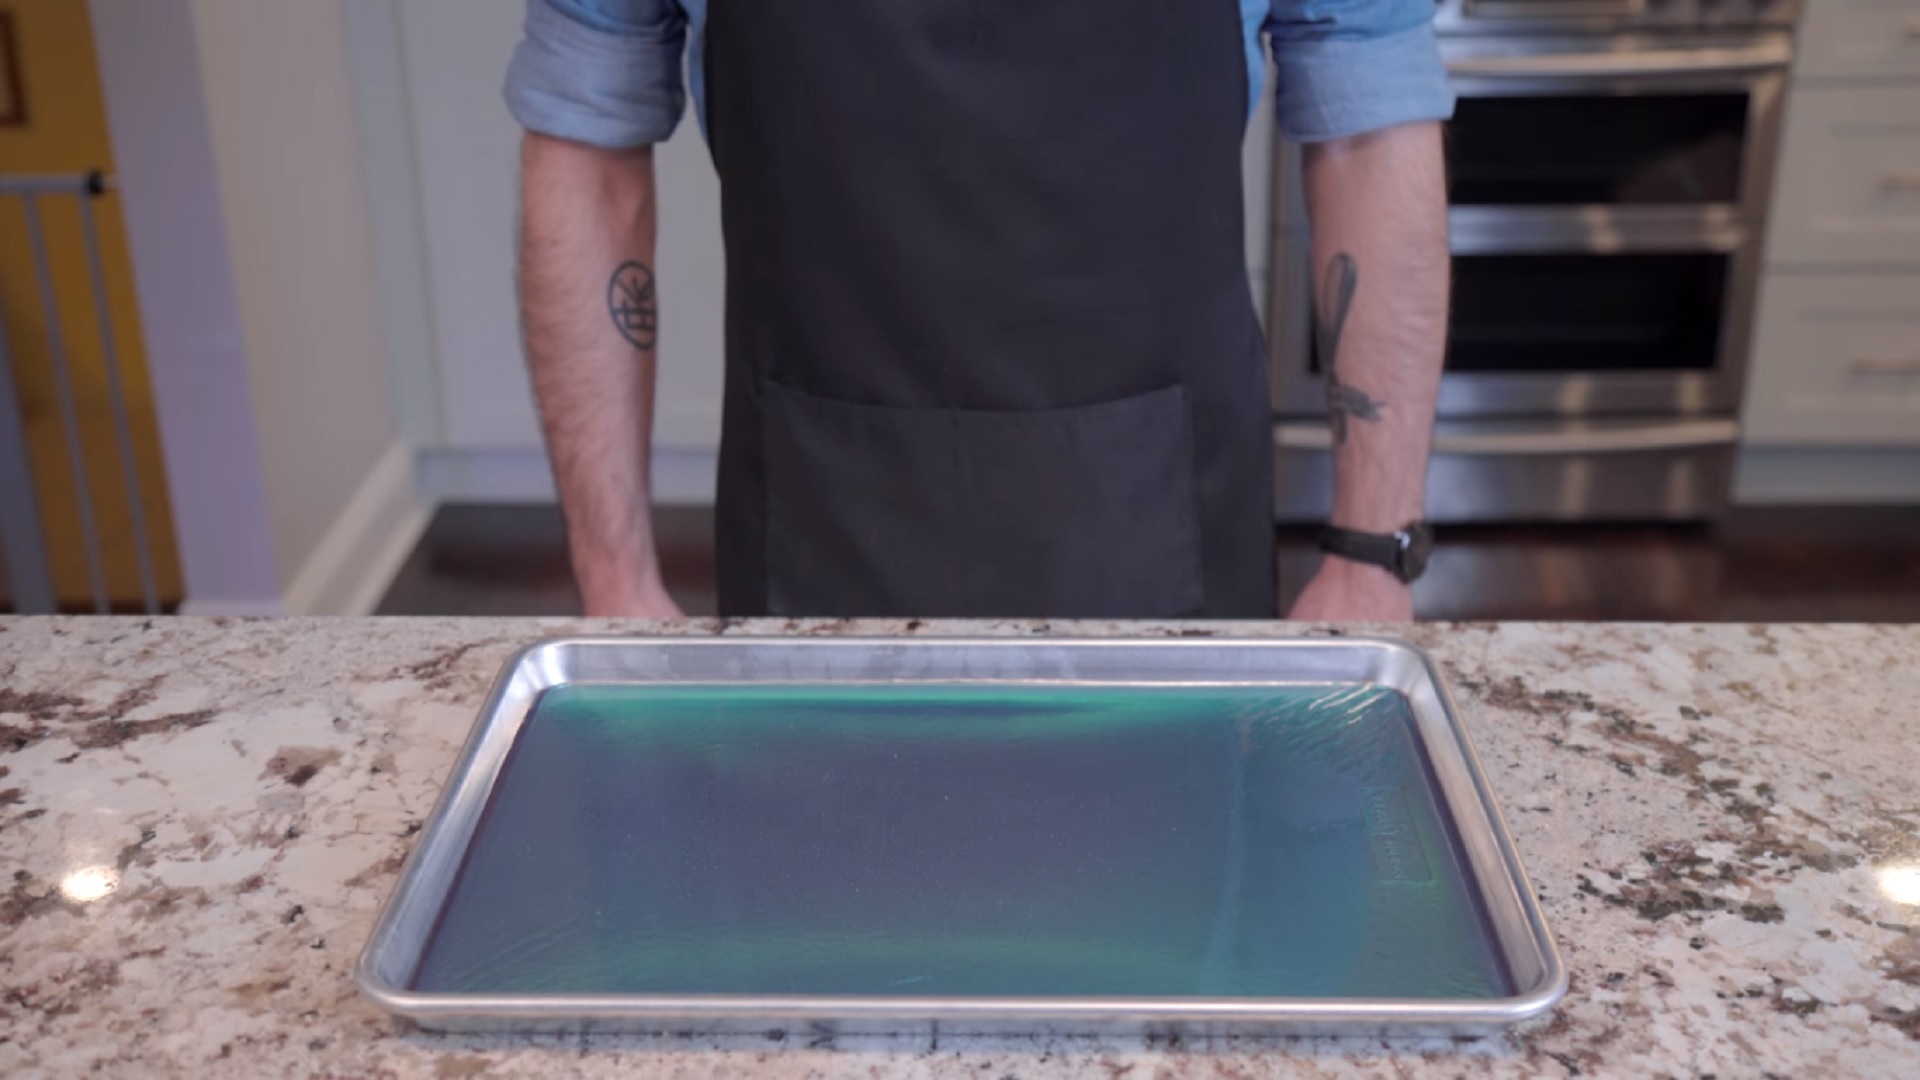 binging-with-babish-shows-you-how-to-make-that-blue-meth-from-breaking-bad-social.jpg